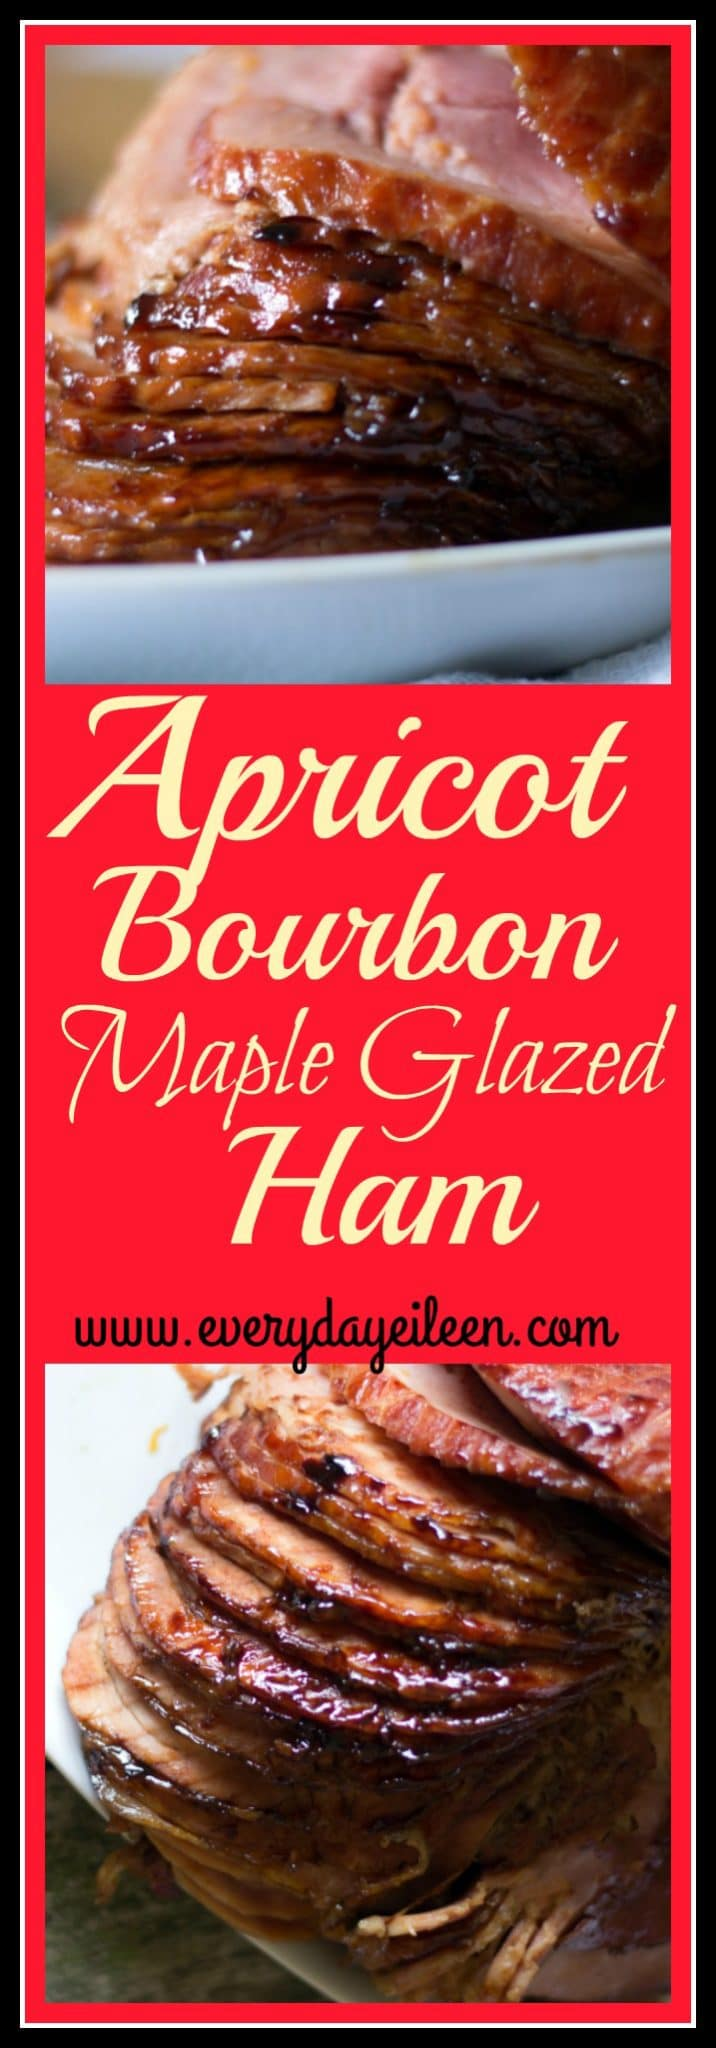 apricot bourbon maple glazed ham